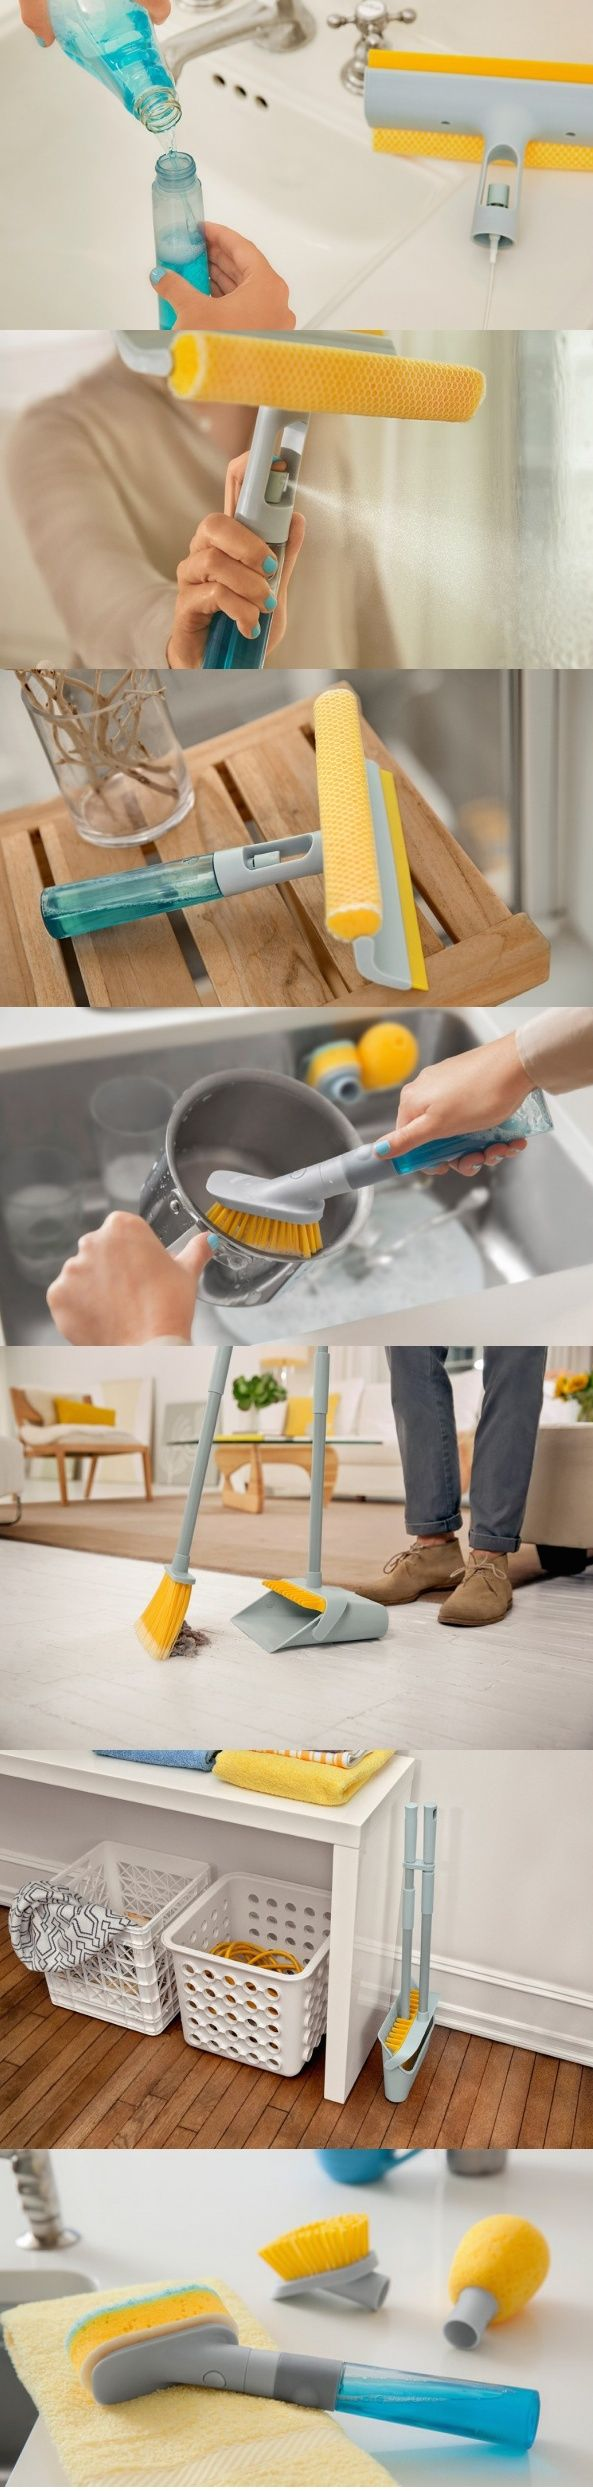 Everything has the scope to be well designed. Even the most mundane objects in your life can come alive through good design. The #Cleaning Kit is a snazzy looking set of cleaning #tools that do their job with precision. #YankoDesign #Living